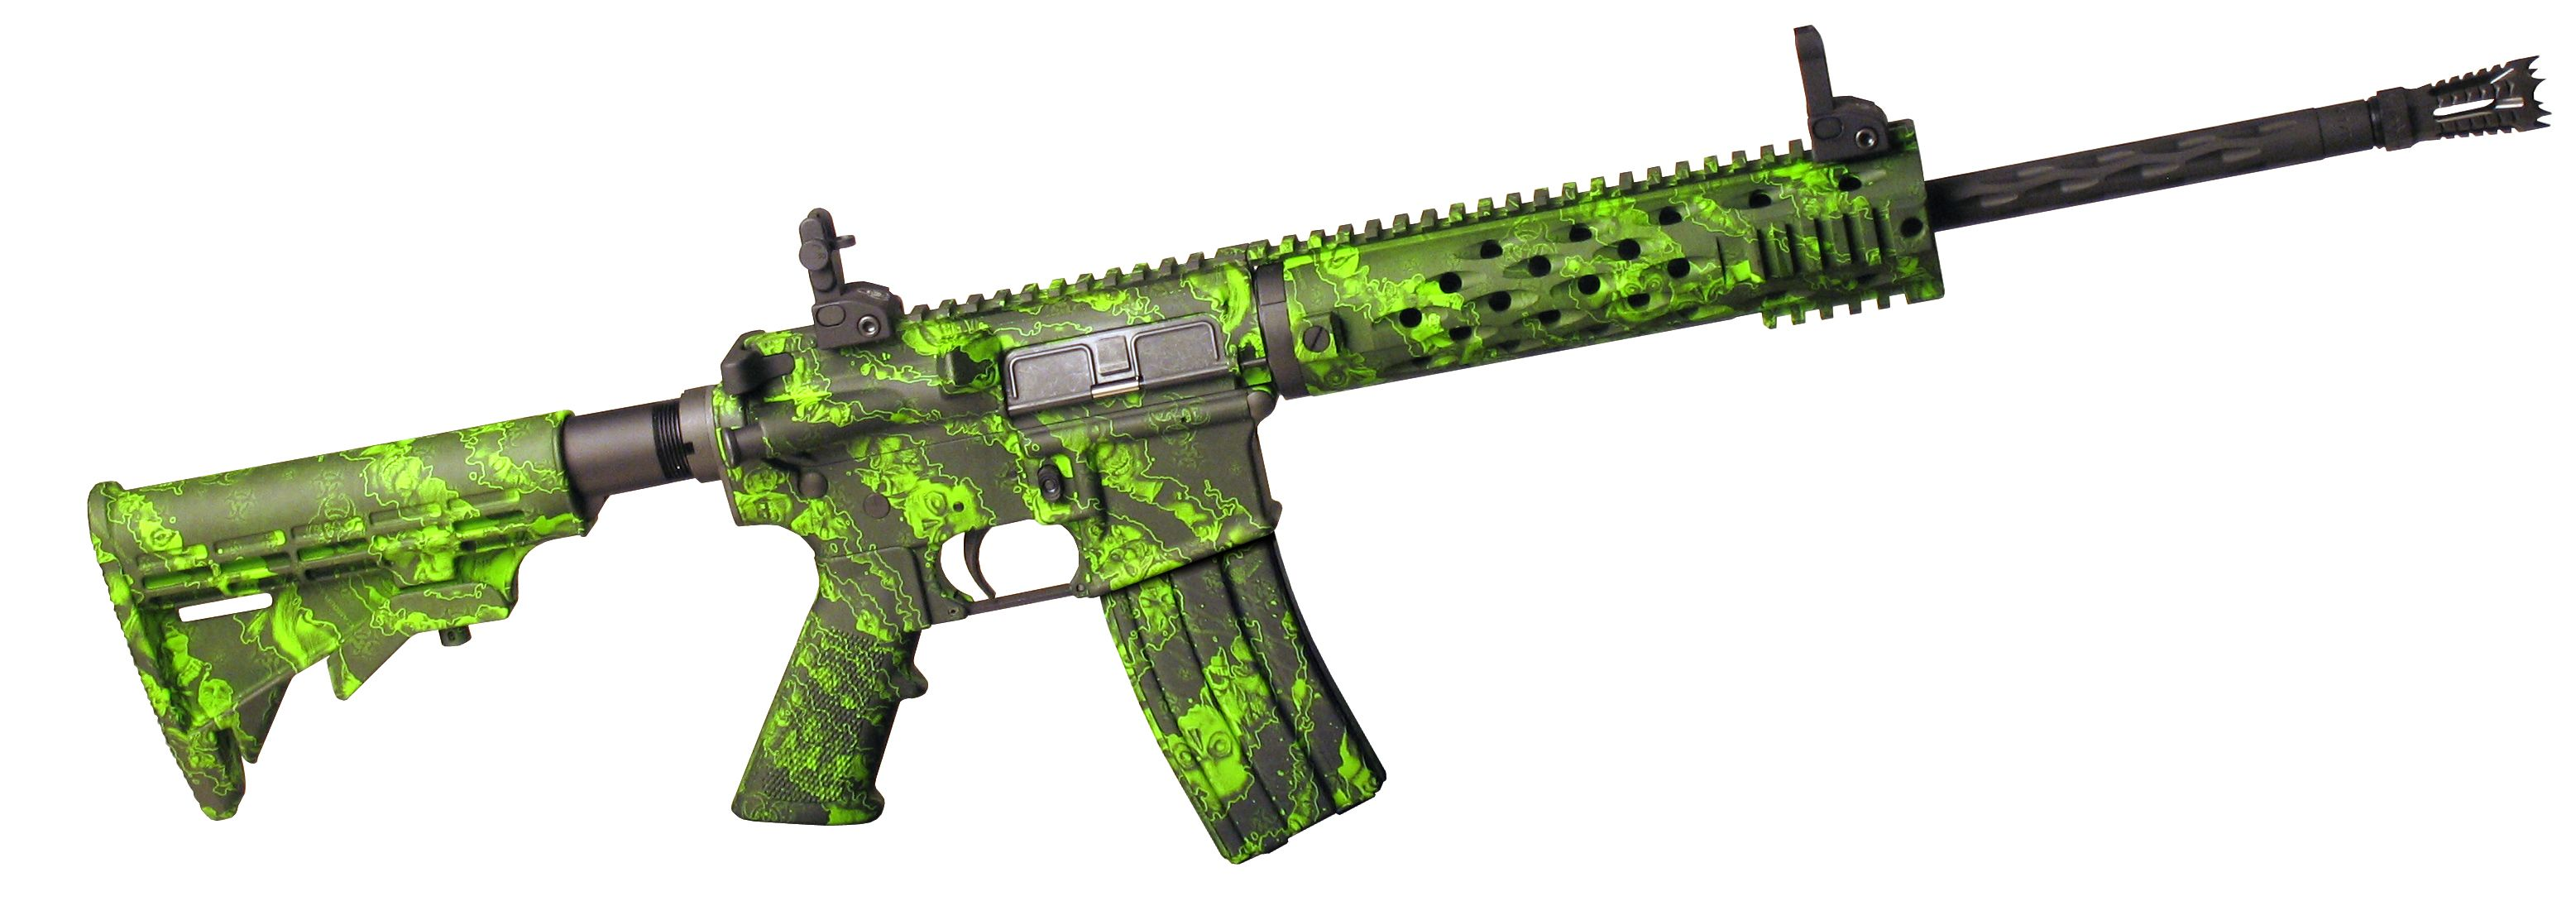 Yankee Hill Zombie Annihilator in #ReaperZ #camo | Partner Products ...